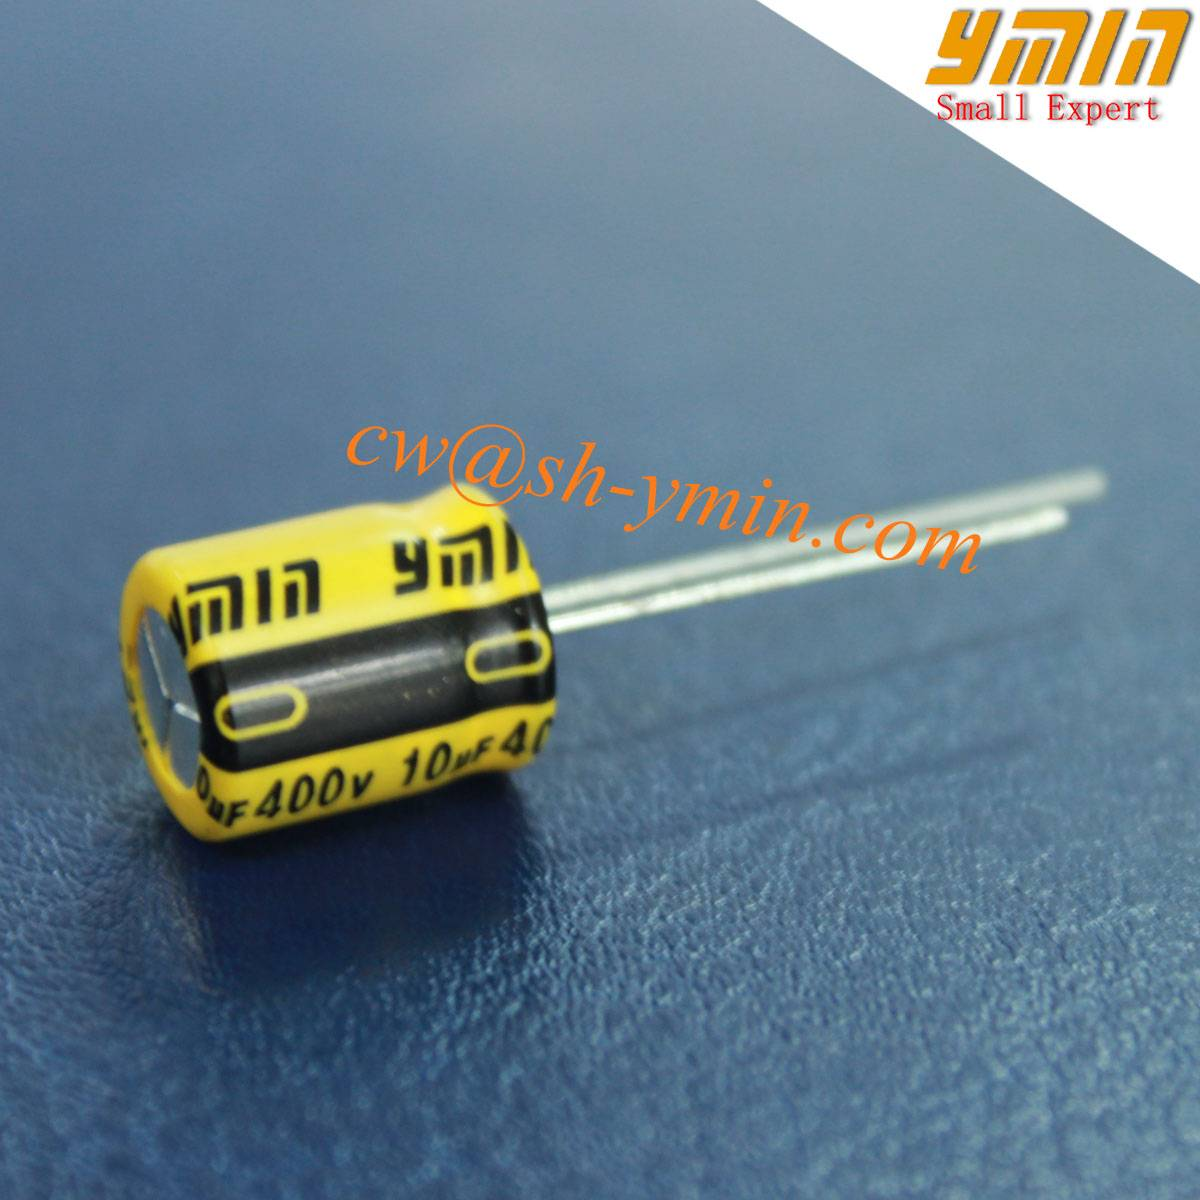 High Voltage 10 uF Capacitor Radial Aluminum Electrolytic Capacitor for LED Drivers and LED Power Su